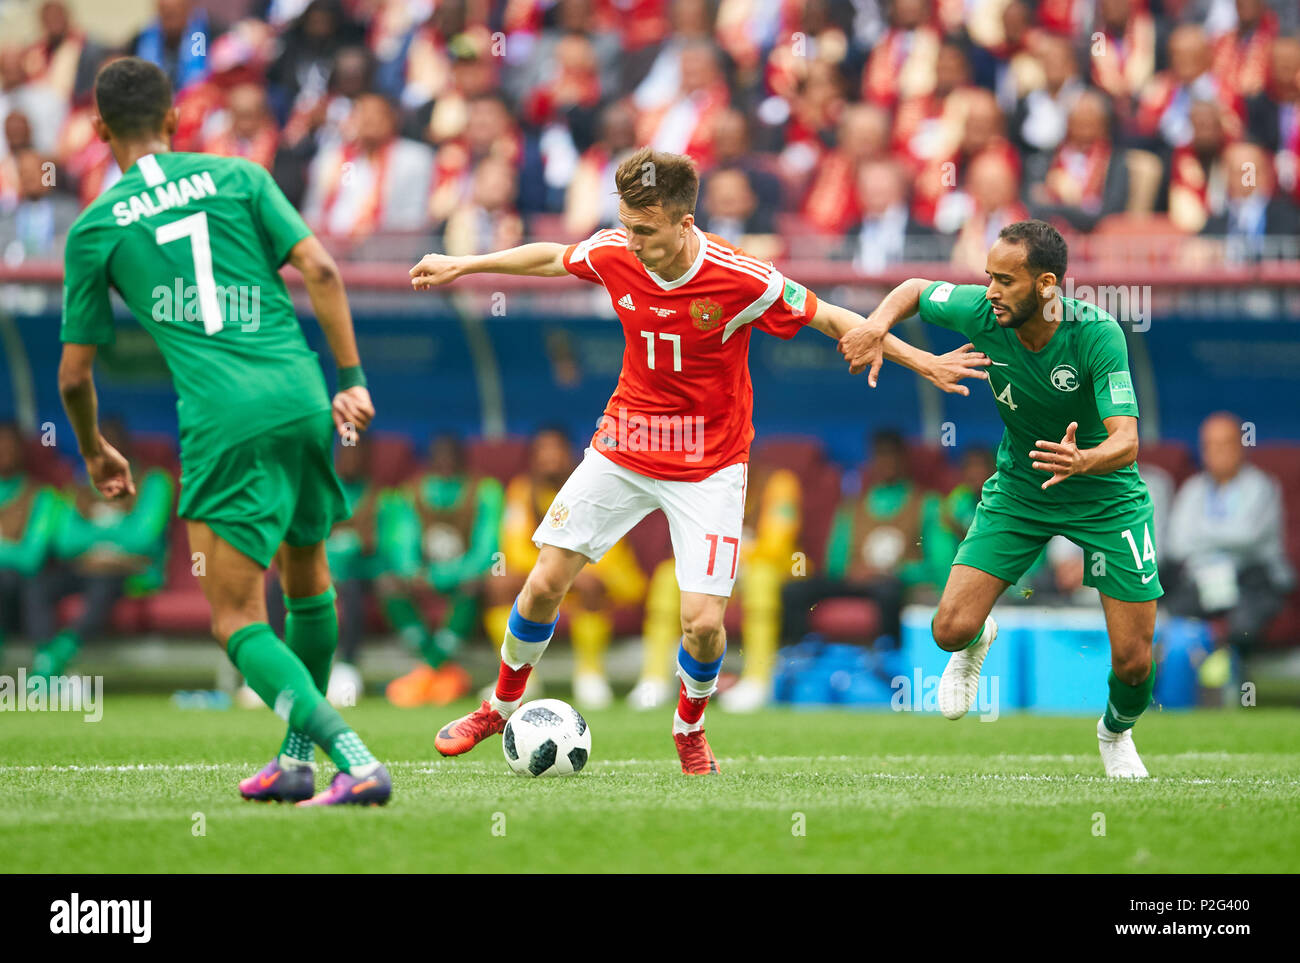 Moscow, Russia- Saudi Arabia, Soccer, Moscow, June 14, 2018 Aleksandr GOLOVIN, Russia Nr.17  compete for the ball, tackling, duel, header against Abdullah OTAYF, Saudi Arabia Nr. 14 Salman ALFARAJ, Saudi Arabia Nr. 7  RUSSIA - SAUDI ARABIA 5-0 FIFA WORLD CUP 2018 RUSSIA opening match, Season 2018/2019,  June 14, 2018 Luzhniki Stadium in Moscow, Russia. © Peter Schatz / Alamy Live News - Stock Image